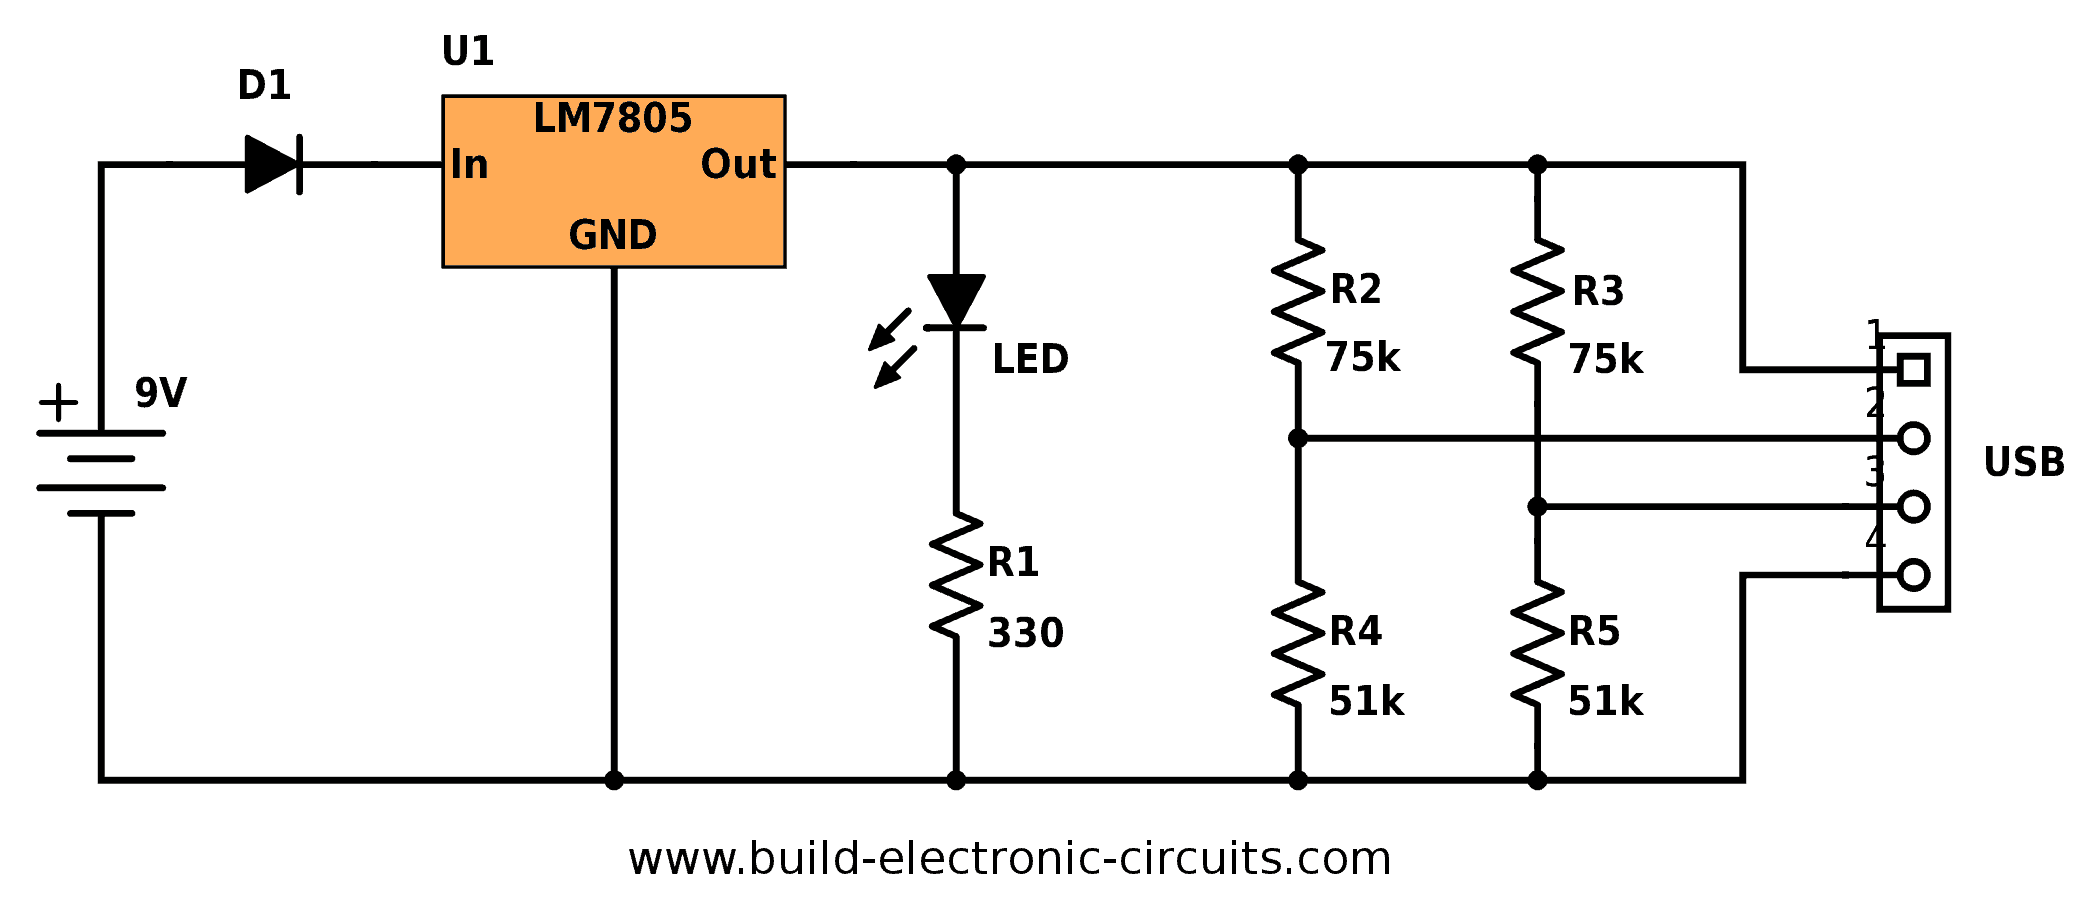 9v battery charger schematic  | build-electronic-circuits.com